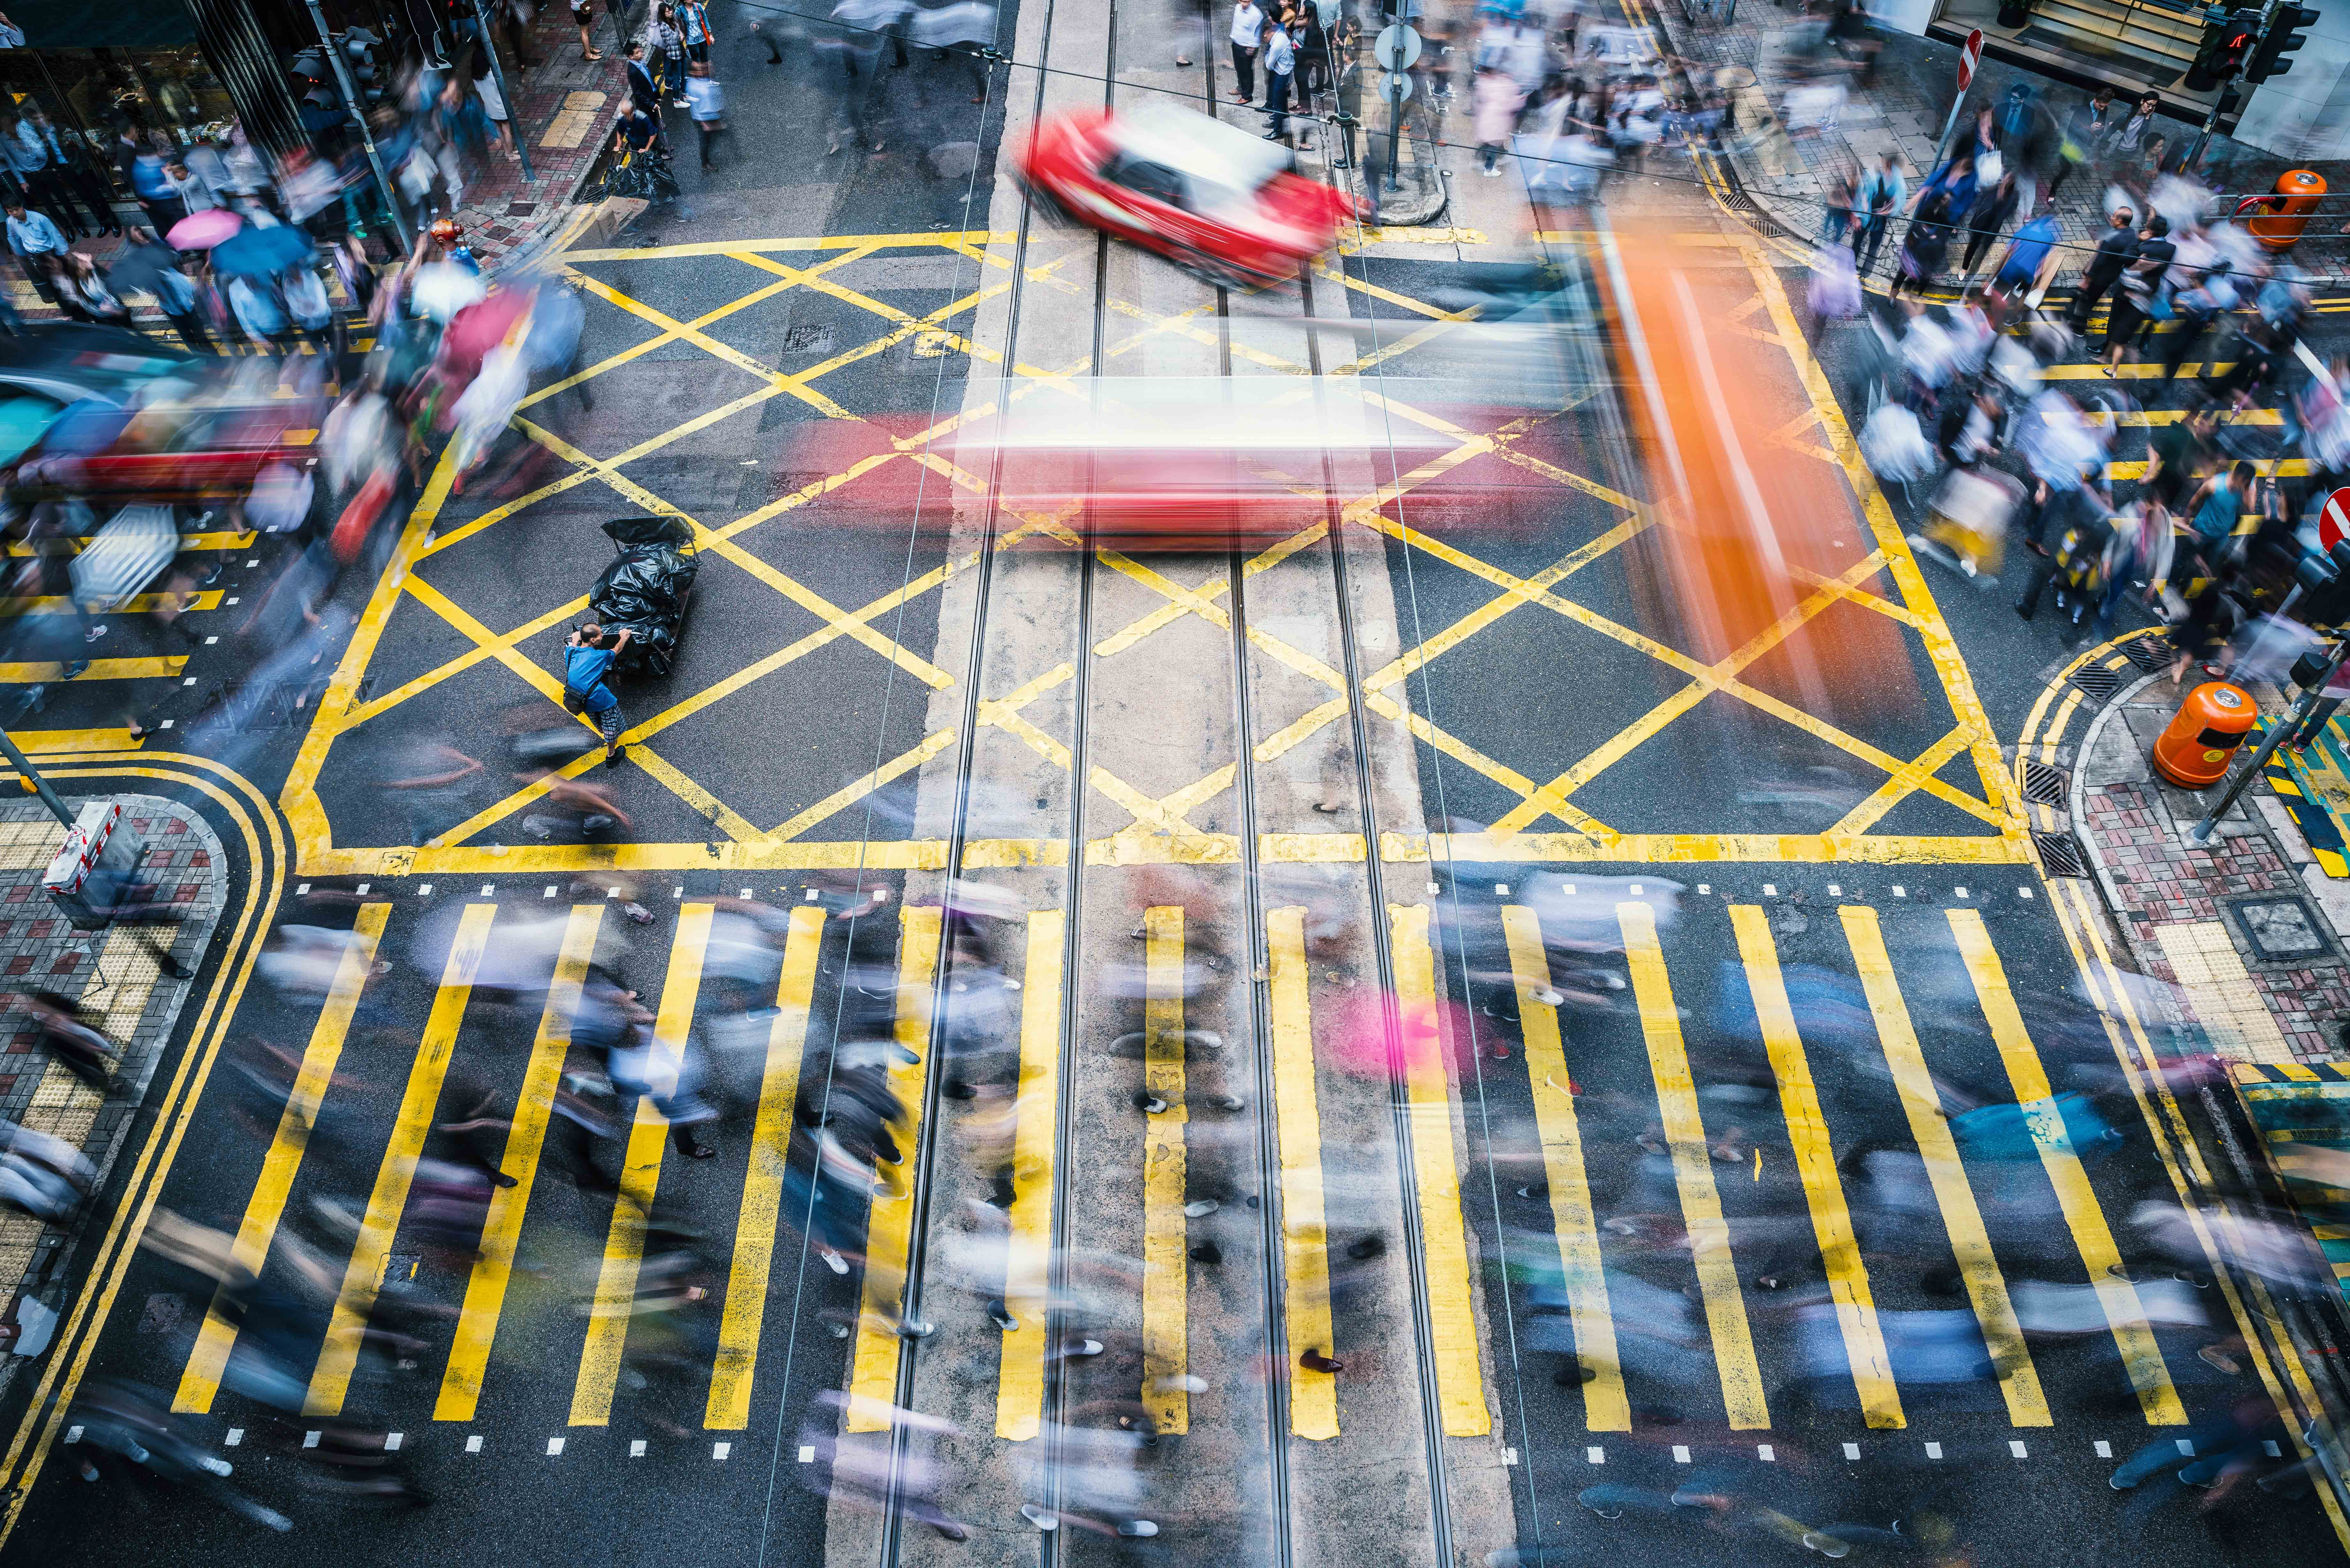 People and taxi cabs crossing a very busy crossroads in the central district, Hong Kong